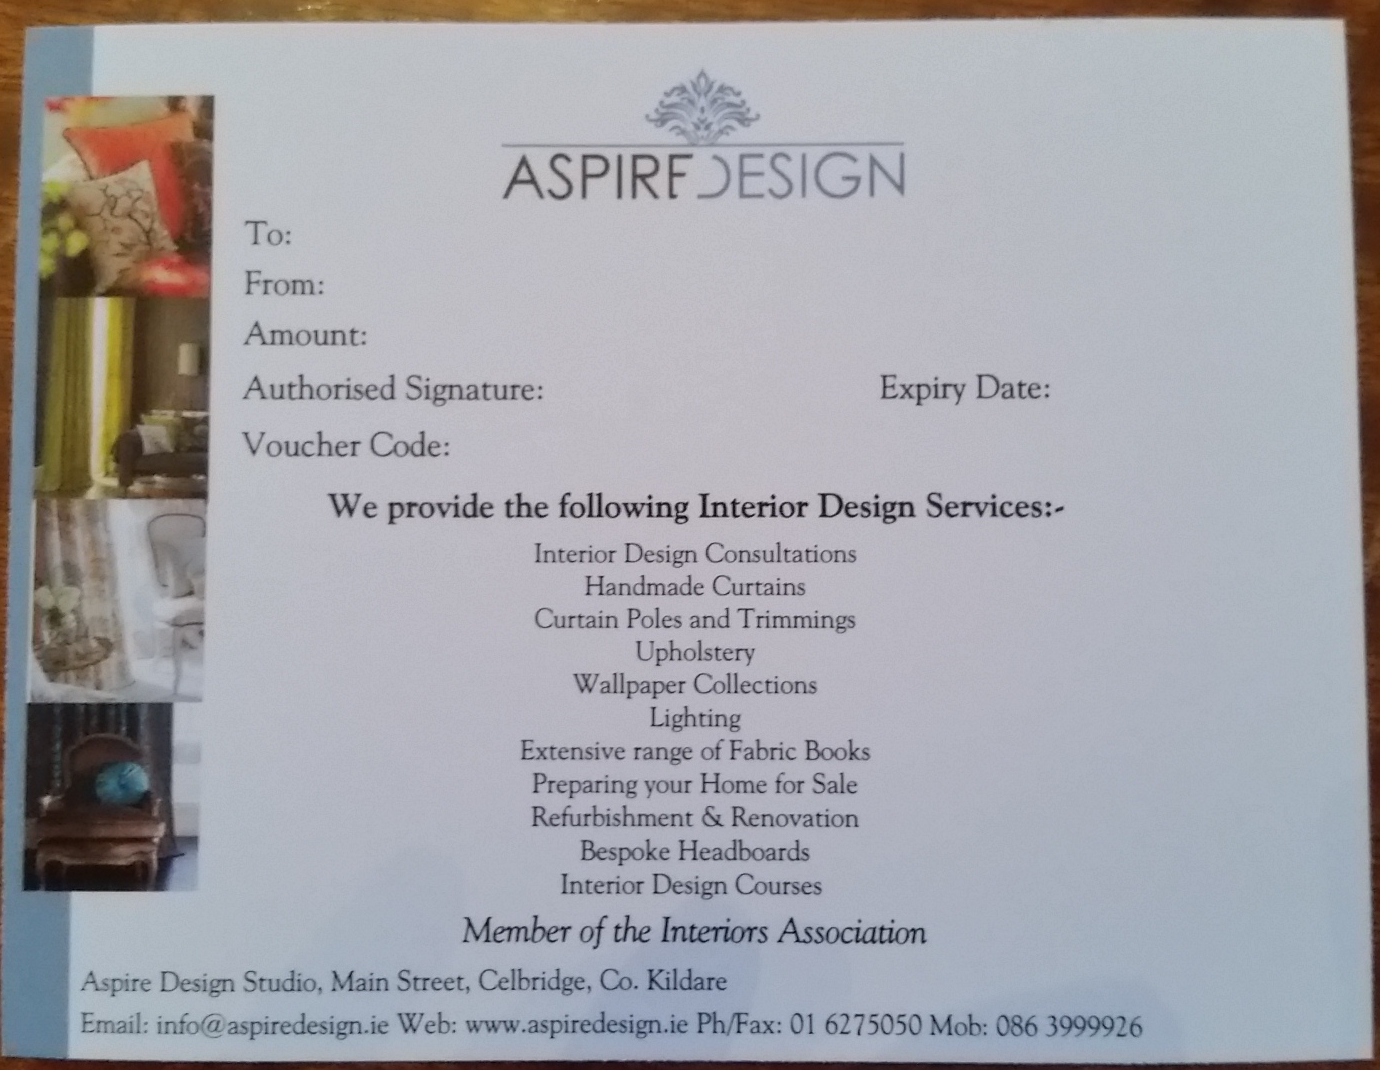 the full interior design consultation service aspire design